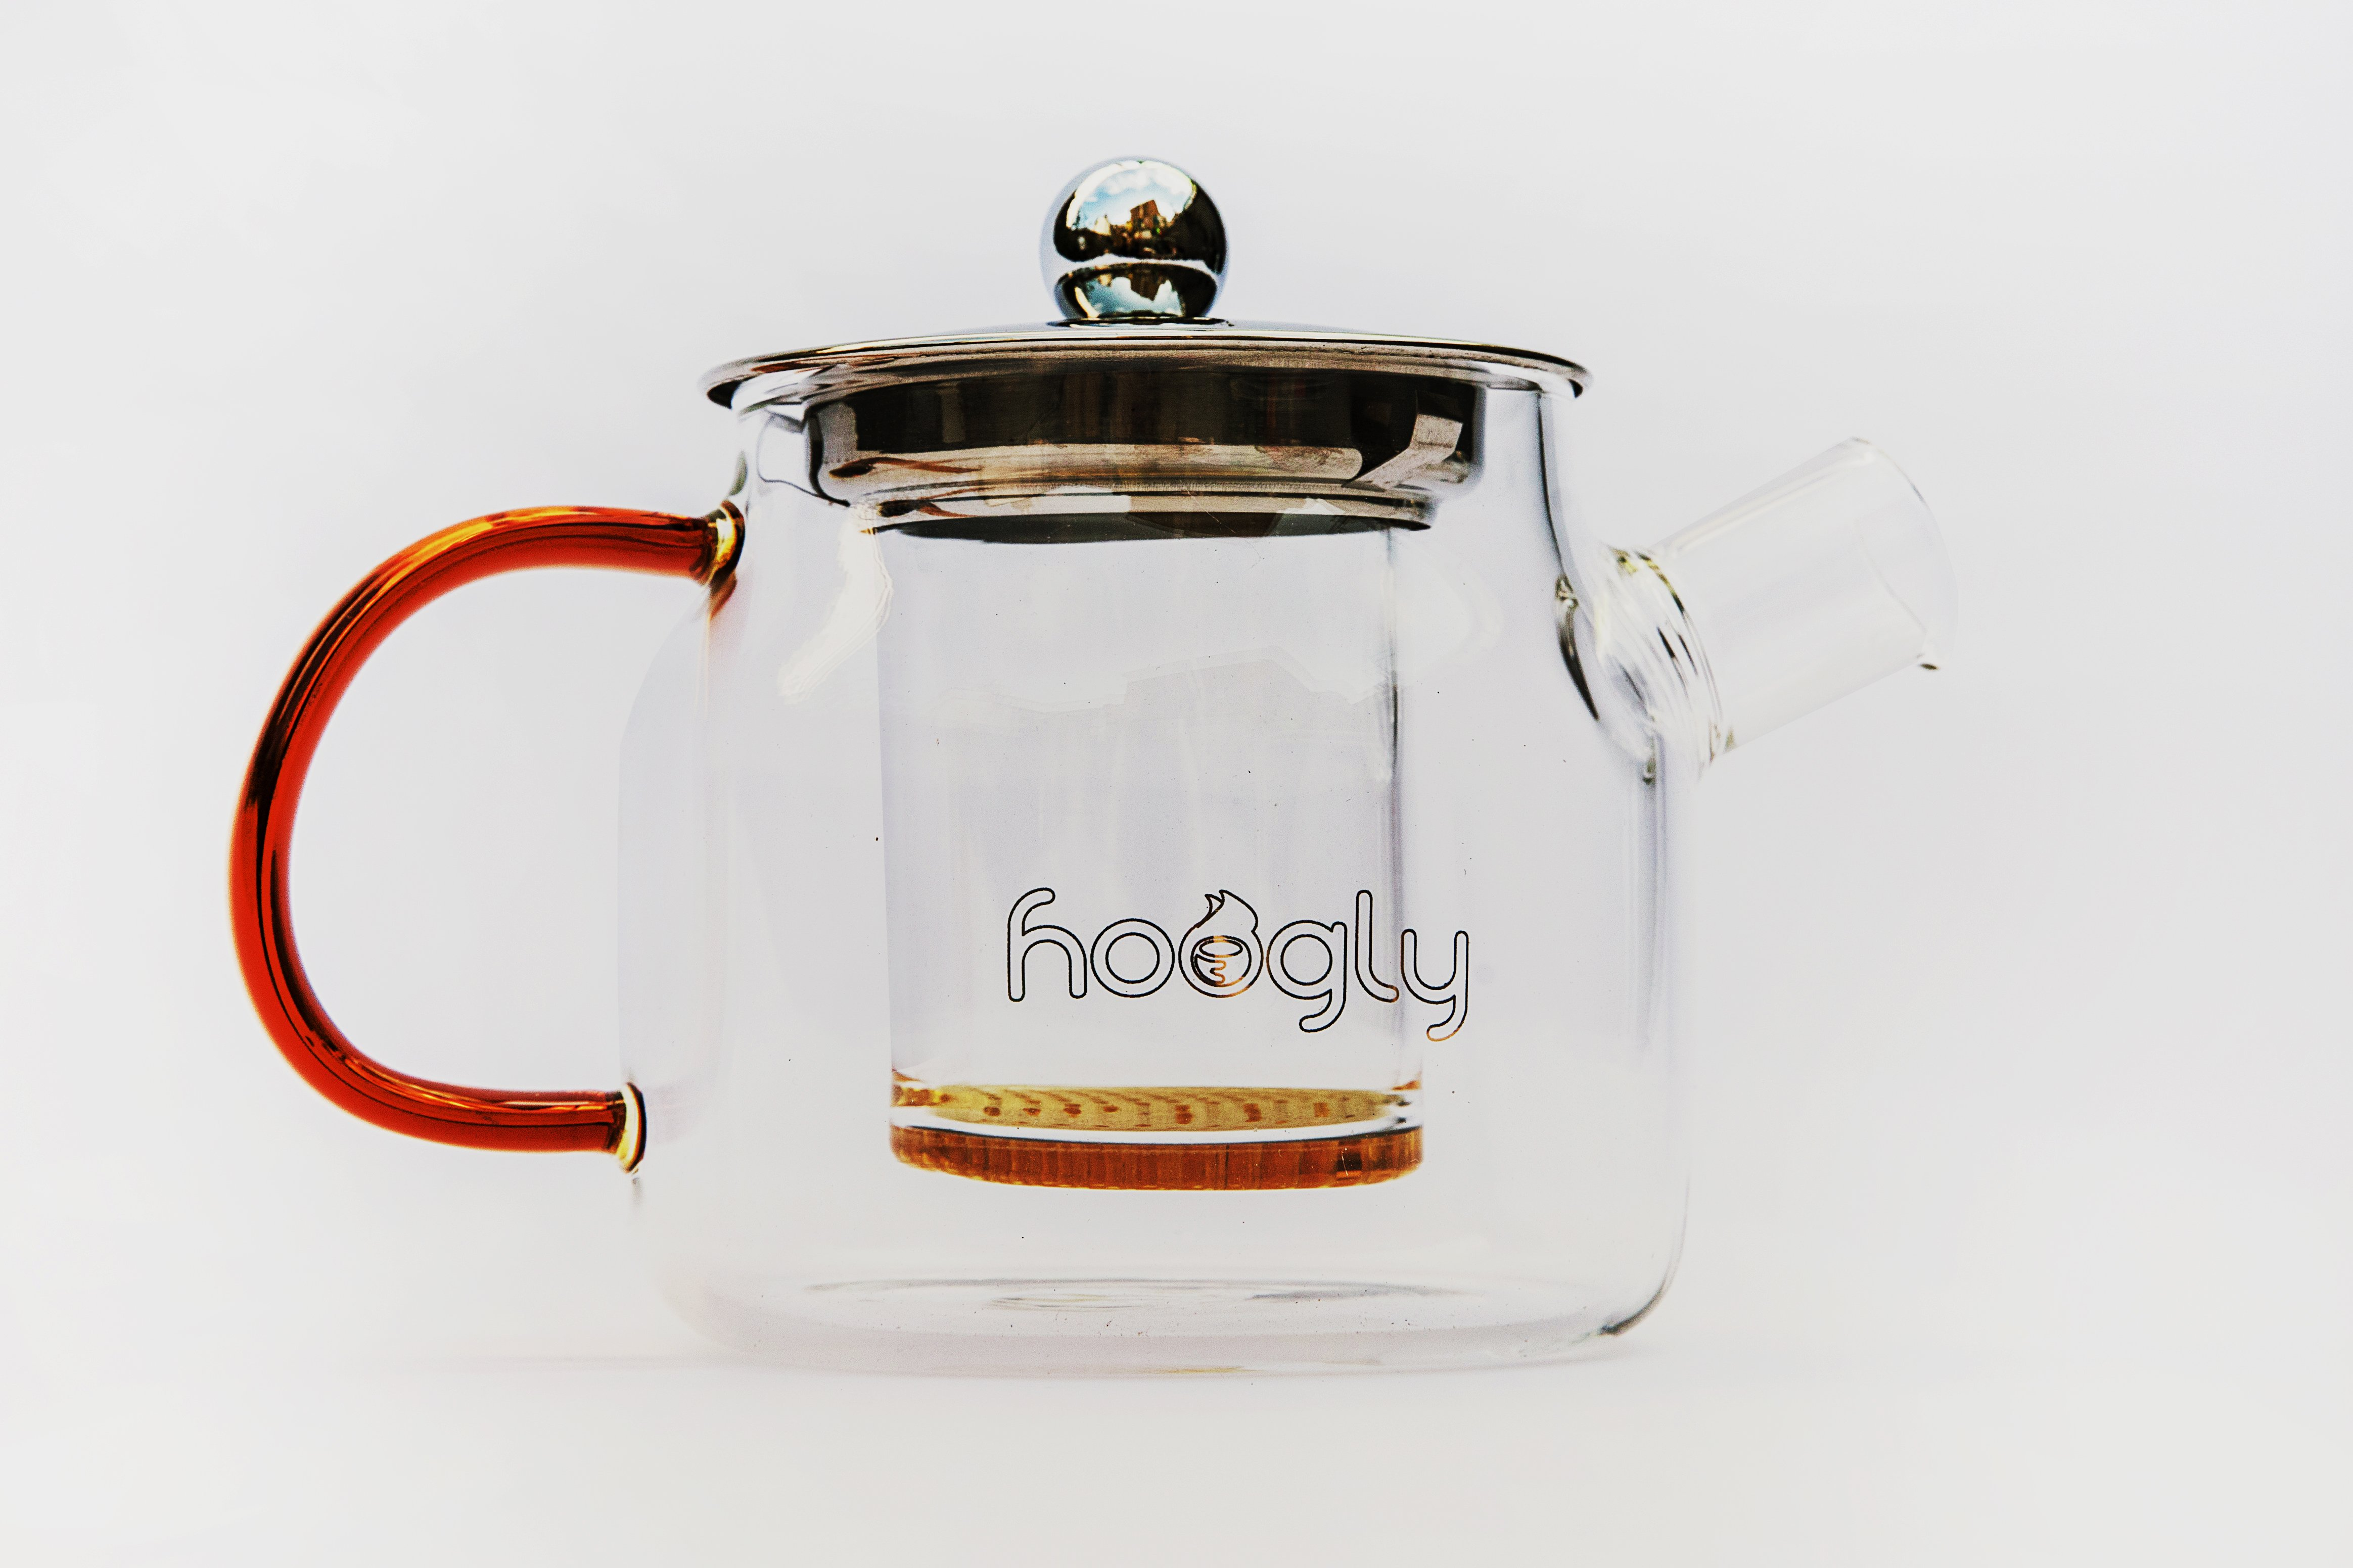 Hoogly  Glass Tea Pot  400ml with removable filter